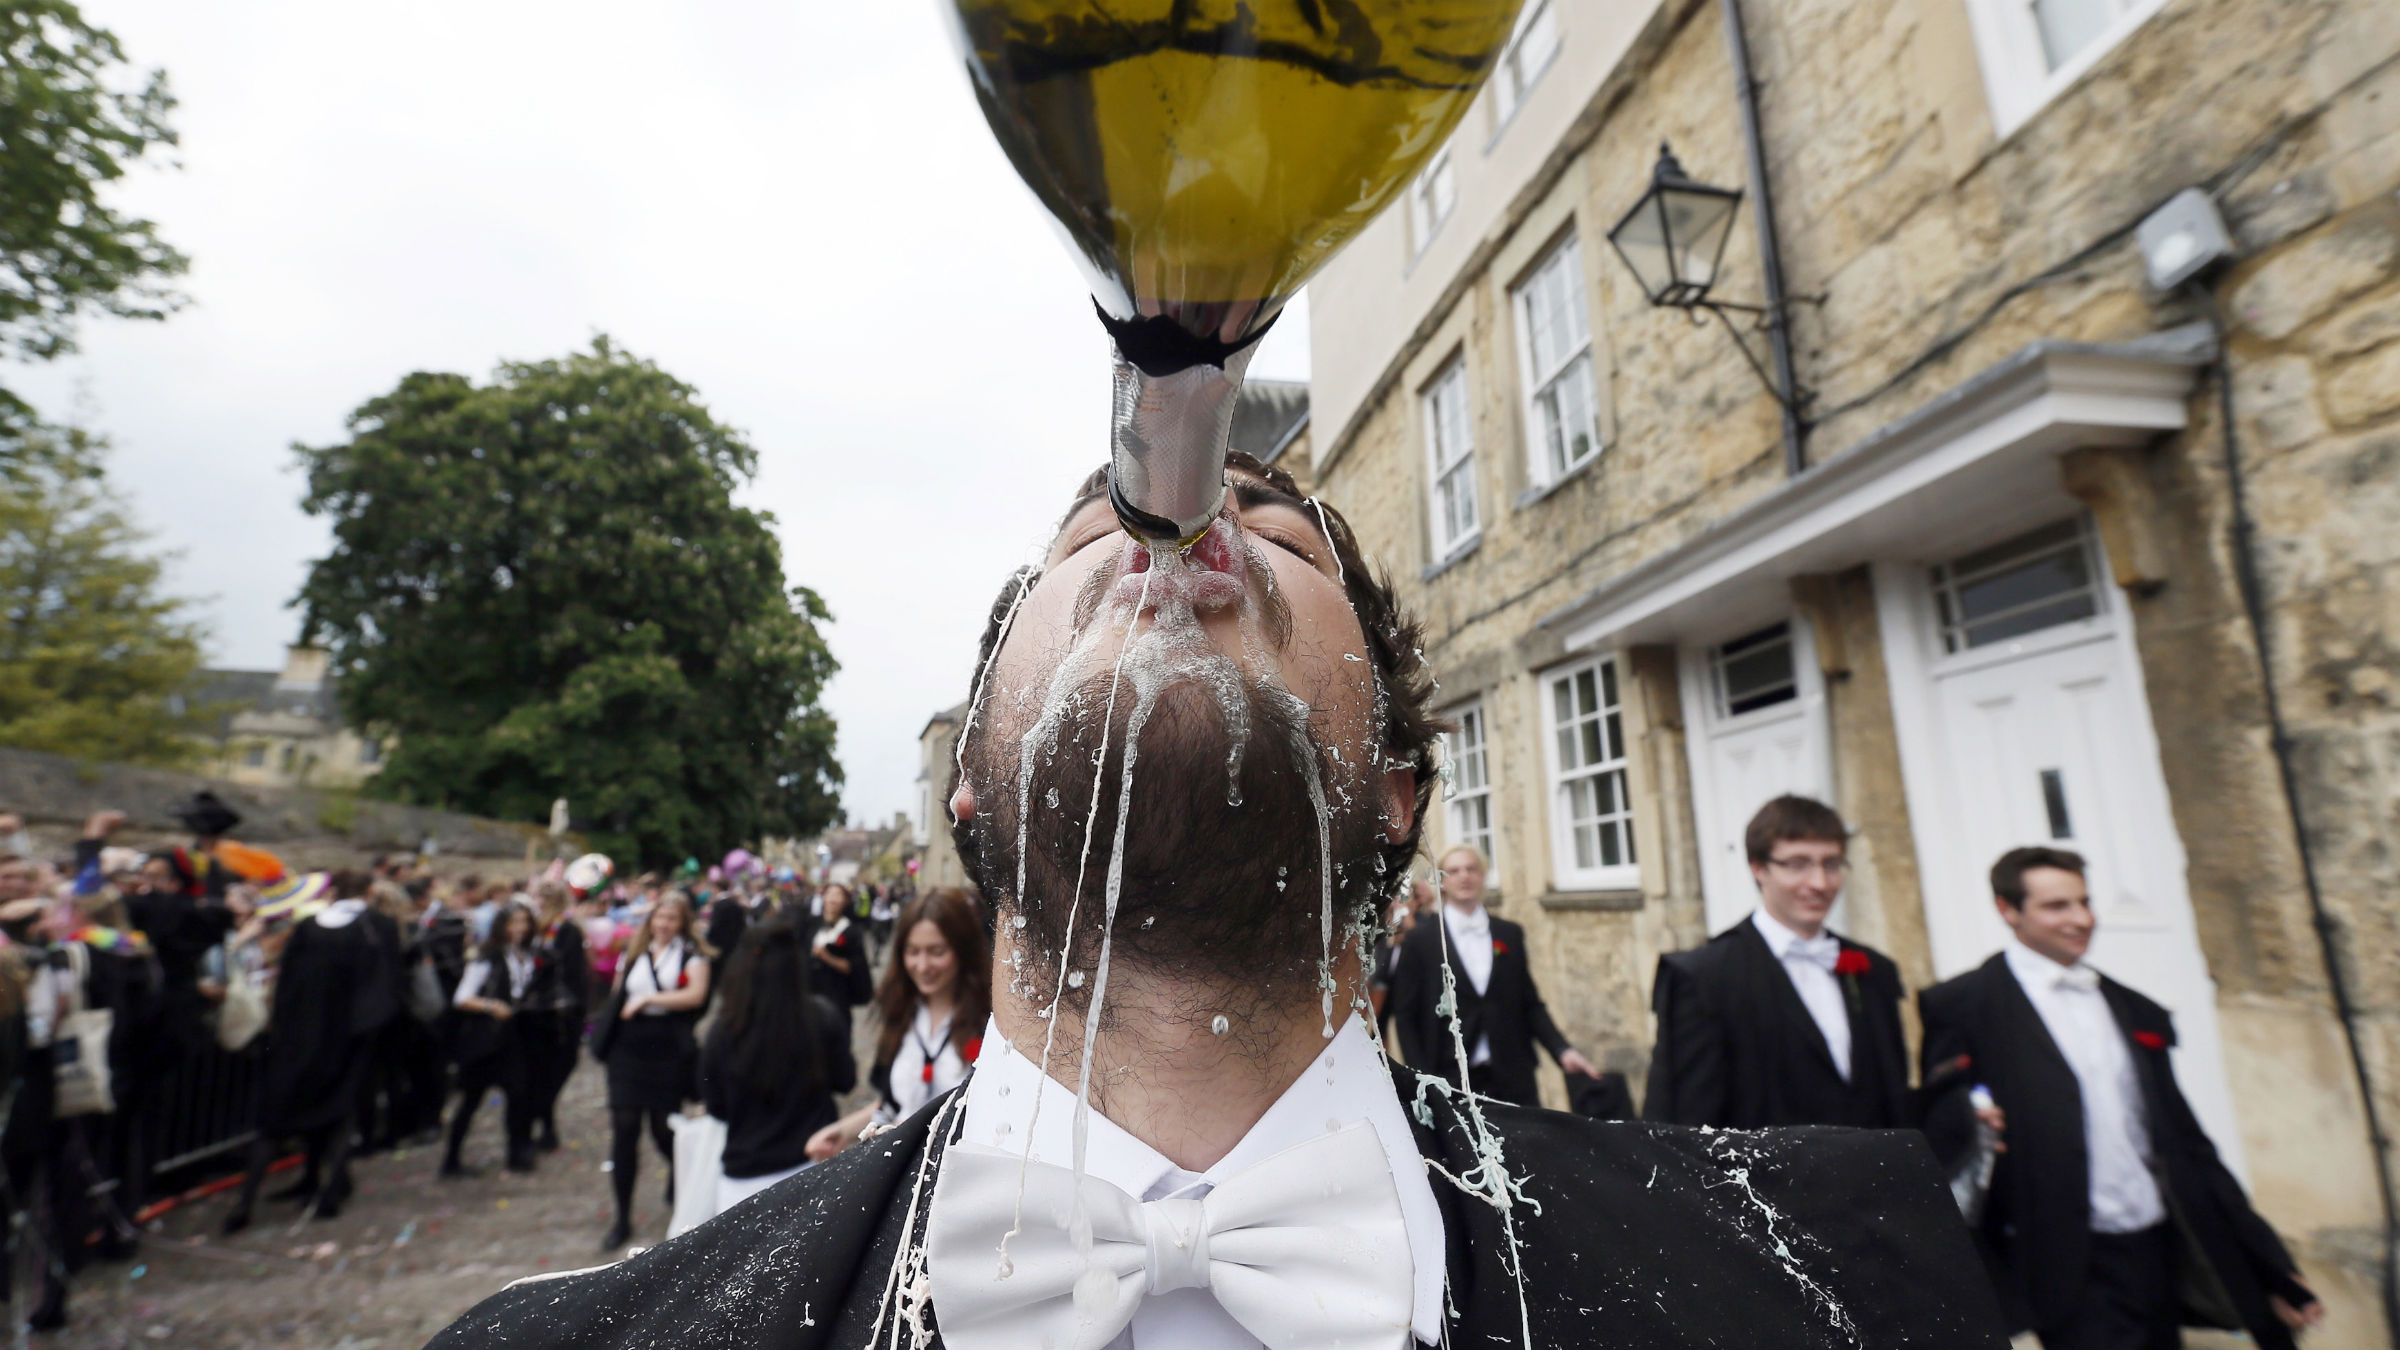 """A student from University College Oxford gets """"trashed"""" after finishing his exams in Oxford, southern England June 7, 2013. Trashing is the practice at Oxford University where students have all manner of messy items thrown at them by their contemporaries after finishing their exams."""